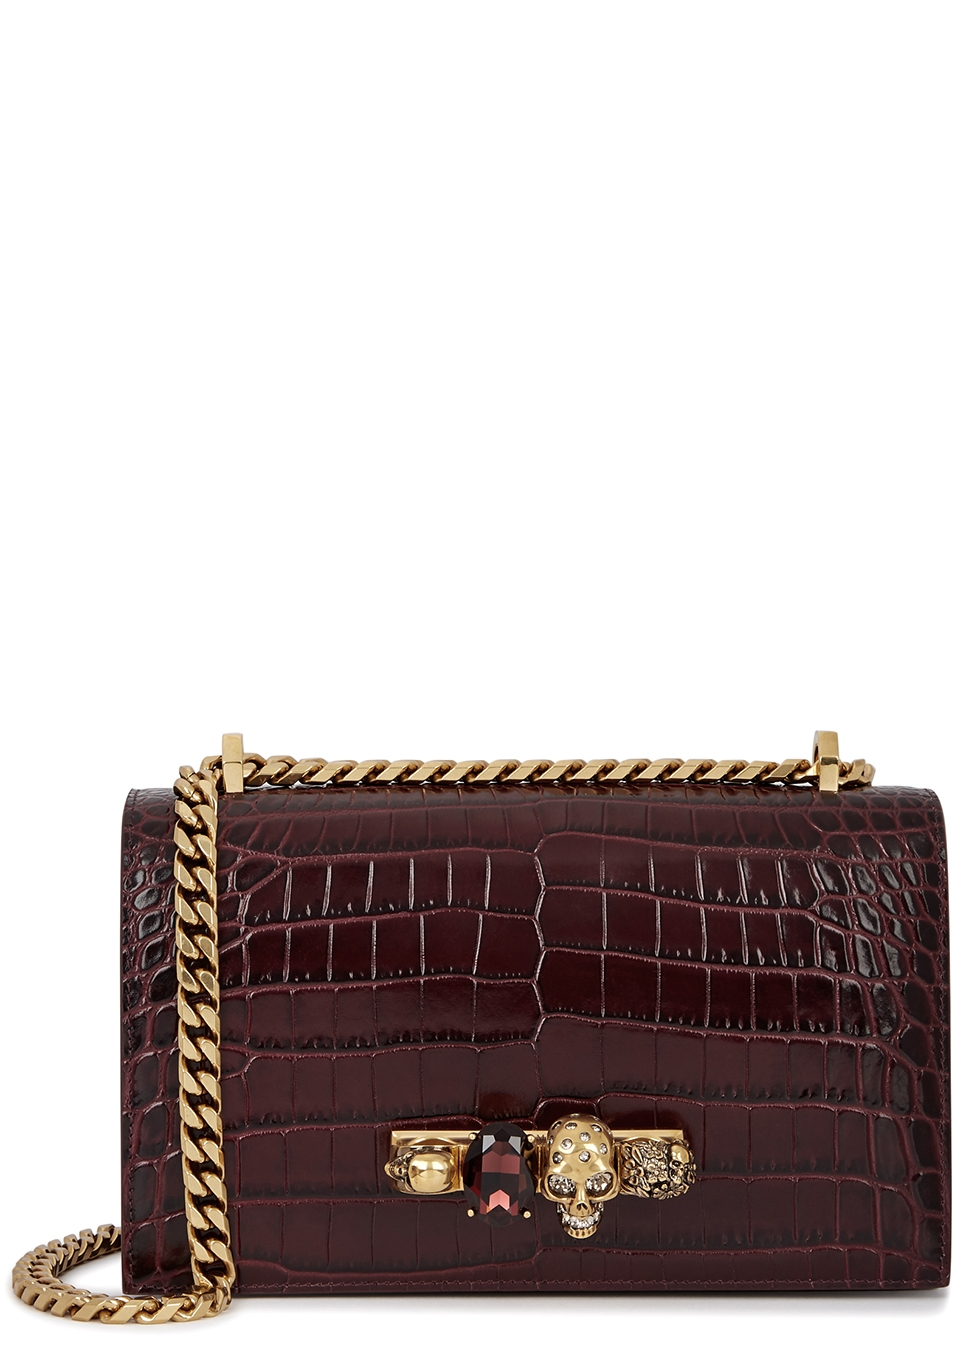 ALEXANDER MCQUEEN | Alexander McQueen Crocodile-Effect Leather Shoulder Bag | Goxip